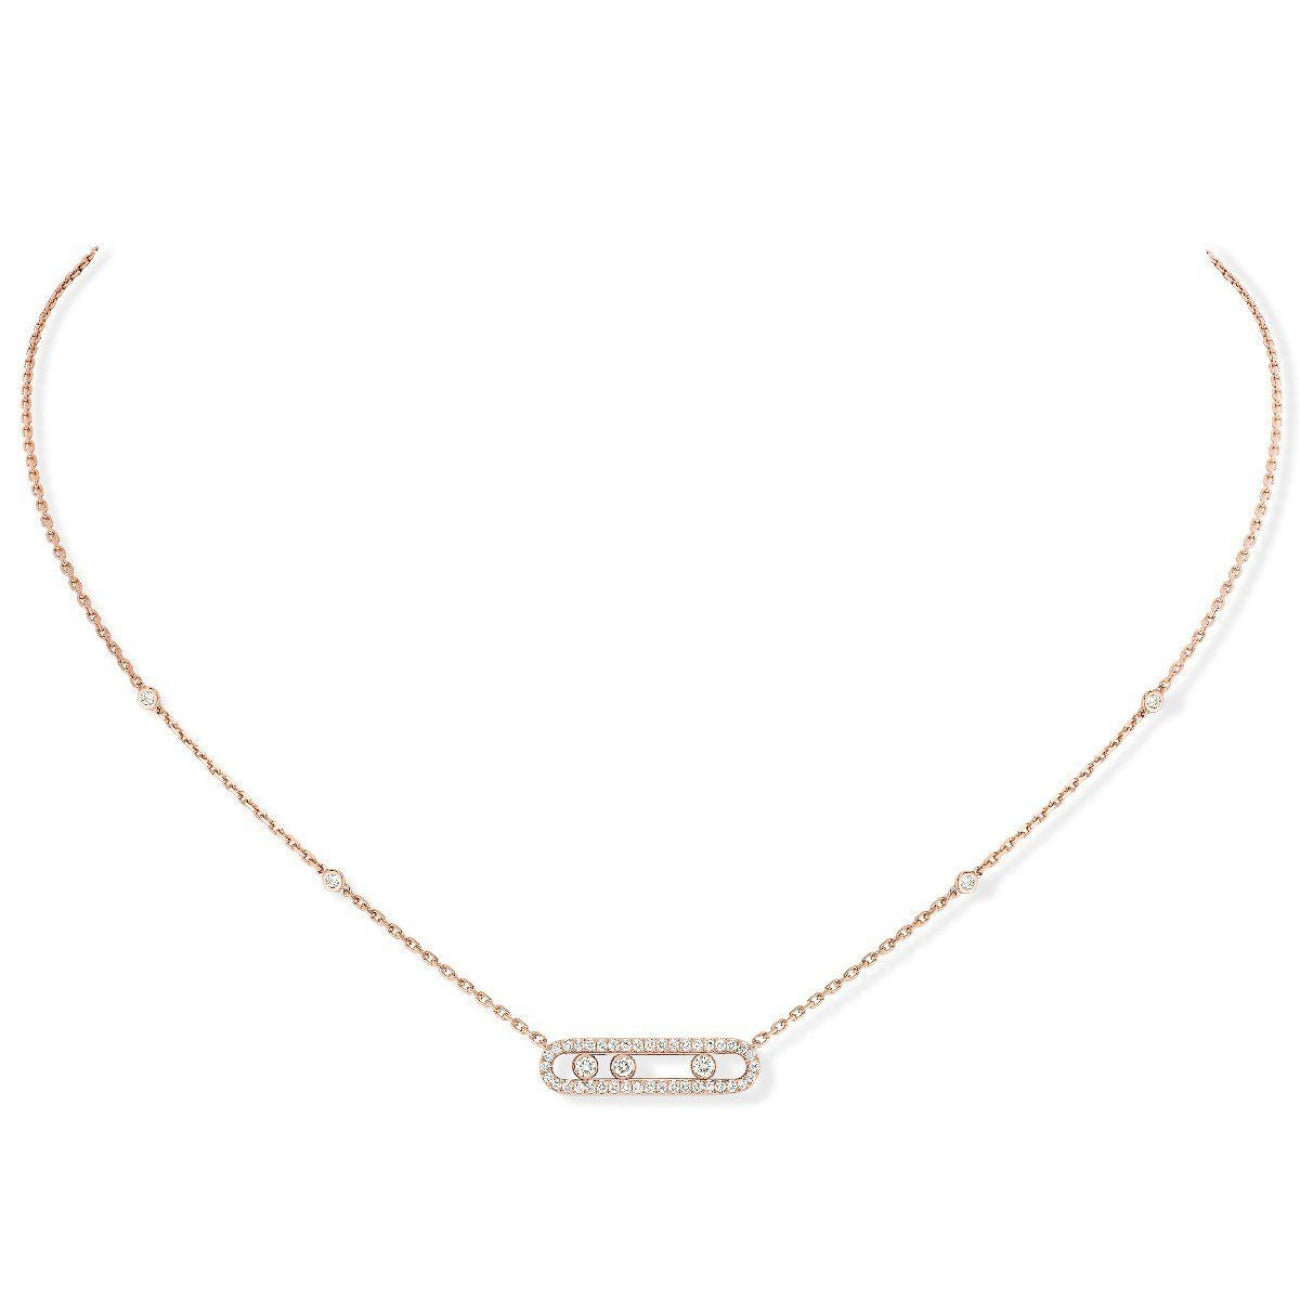 Messika Jewelry - Baby Move Pavé NECKLACE - Pink Gold | Manfredi Jewels